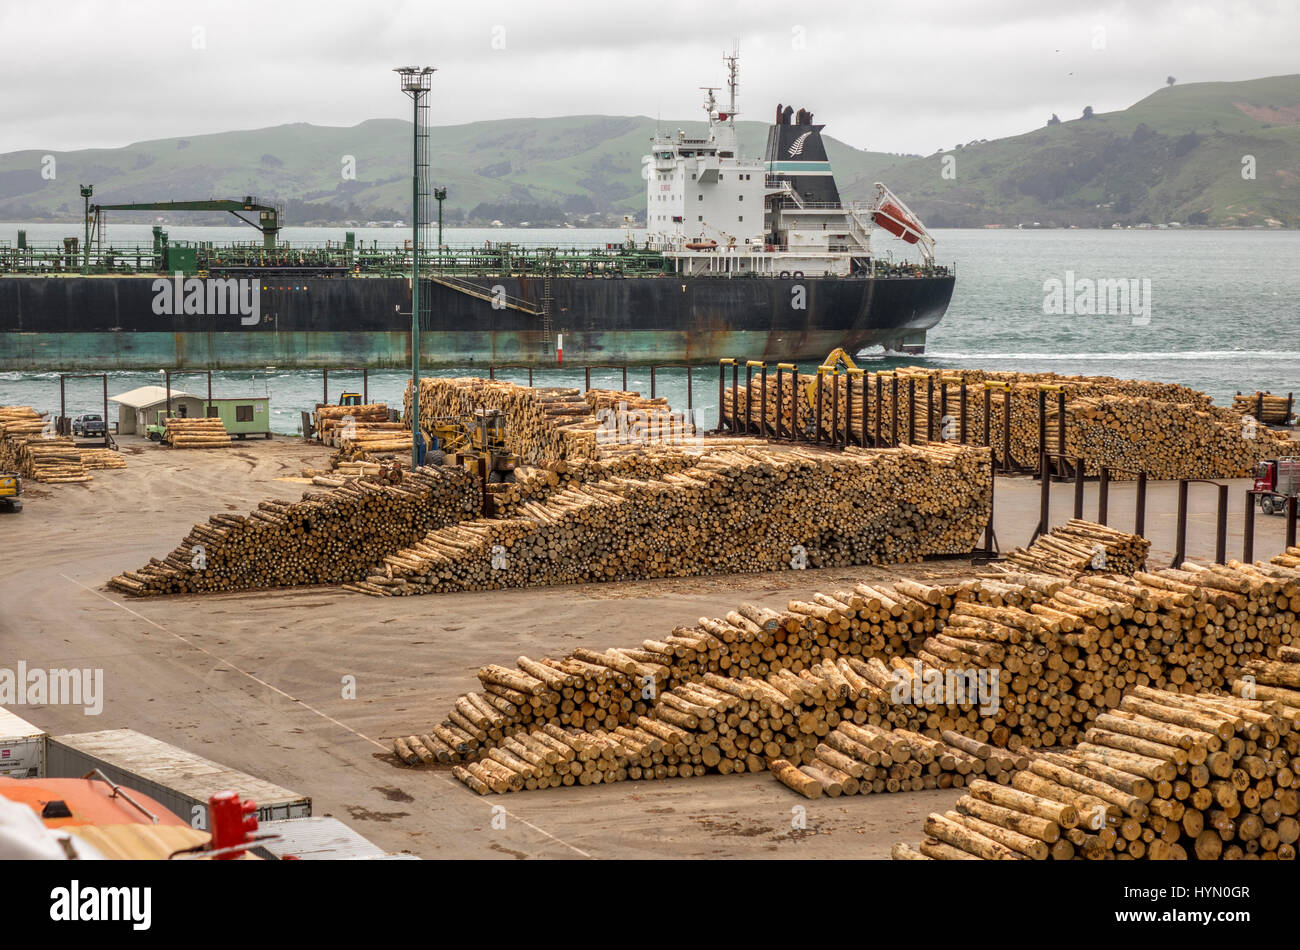 Sawlogs Stacked Ready For Shipping At Port Chalmers Near Dunedin New Zealand, Forest Product Exports - Stock Image